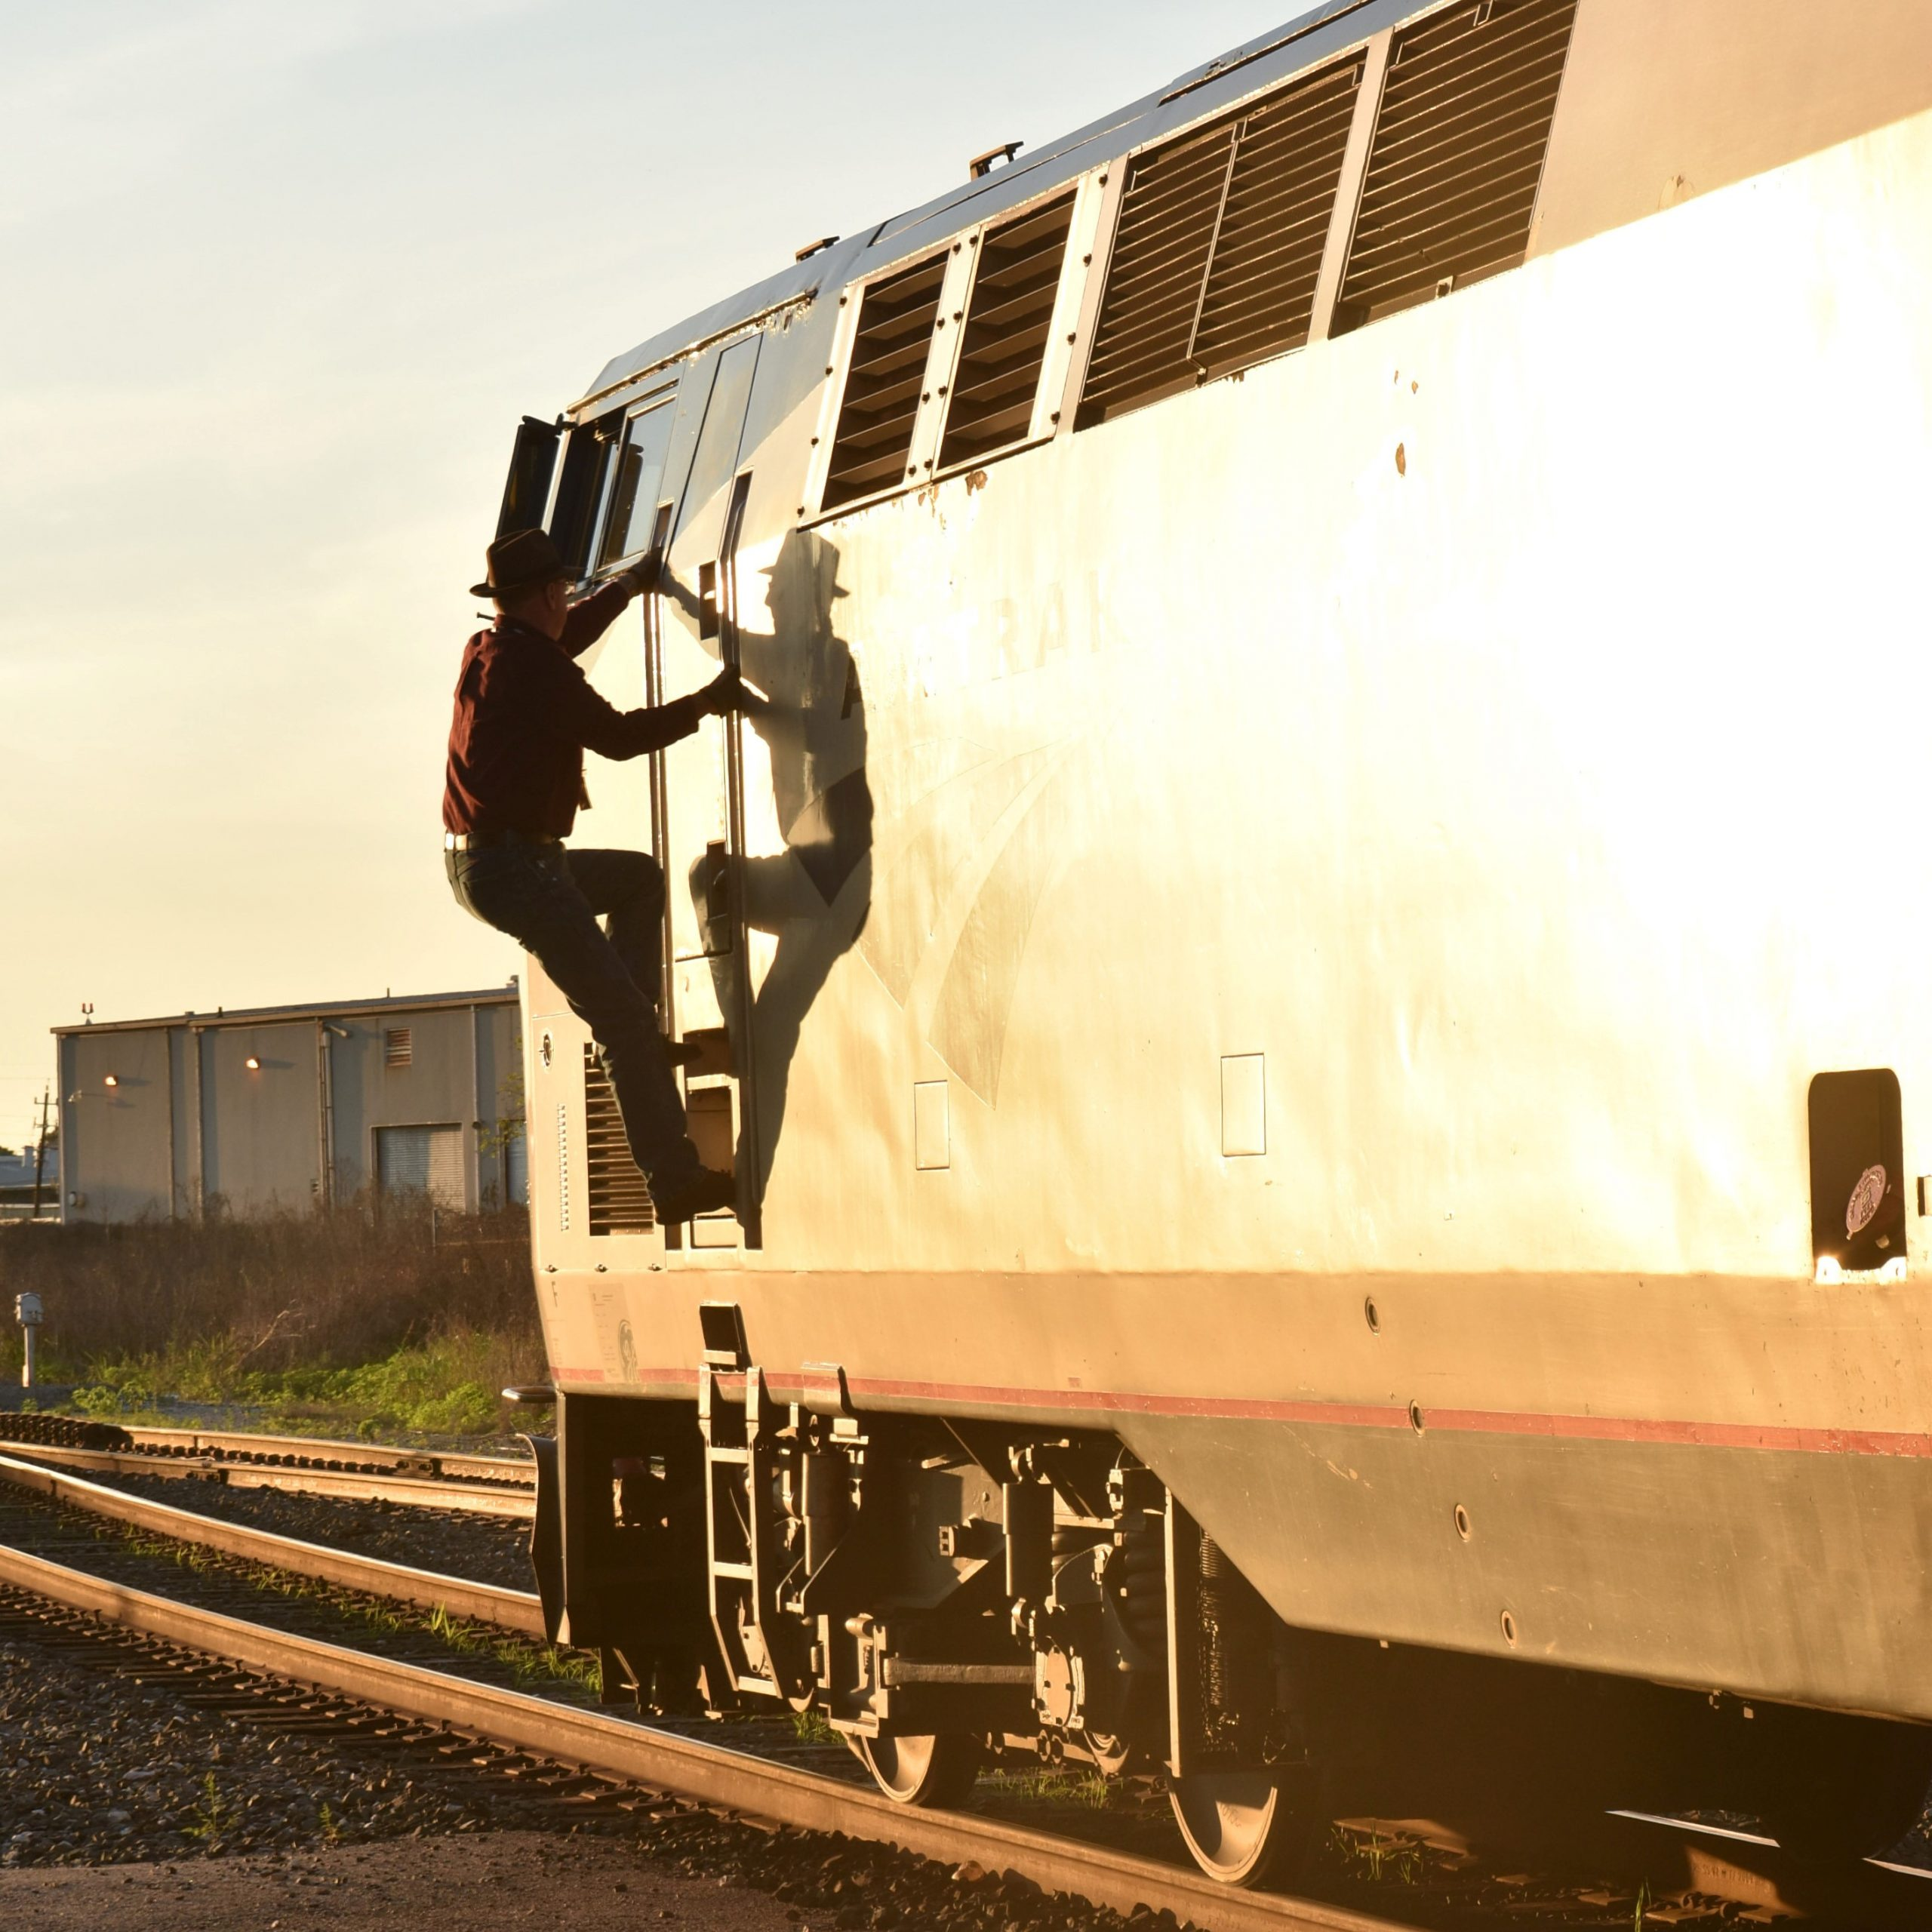 The driver climbing up in the evening sun to get into the cab of the lead locomotive of the Sunset Limit at Houston, Texas